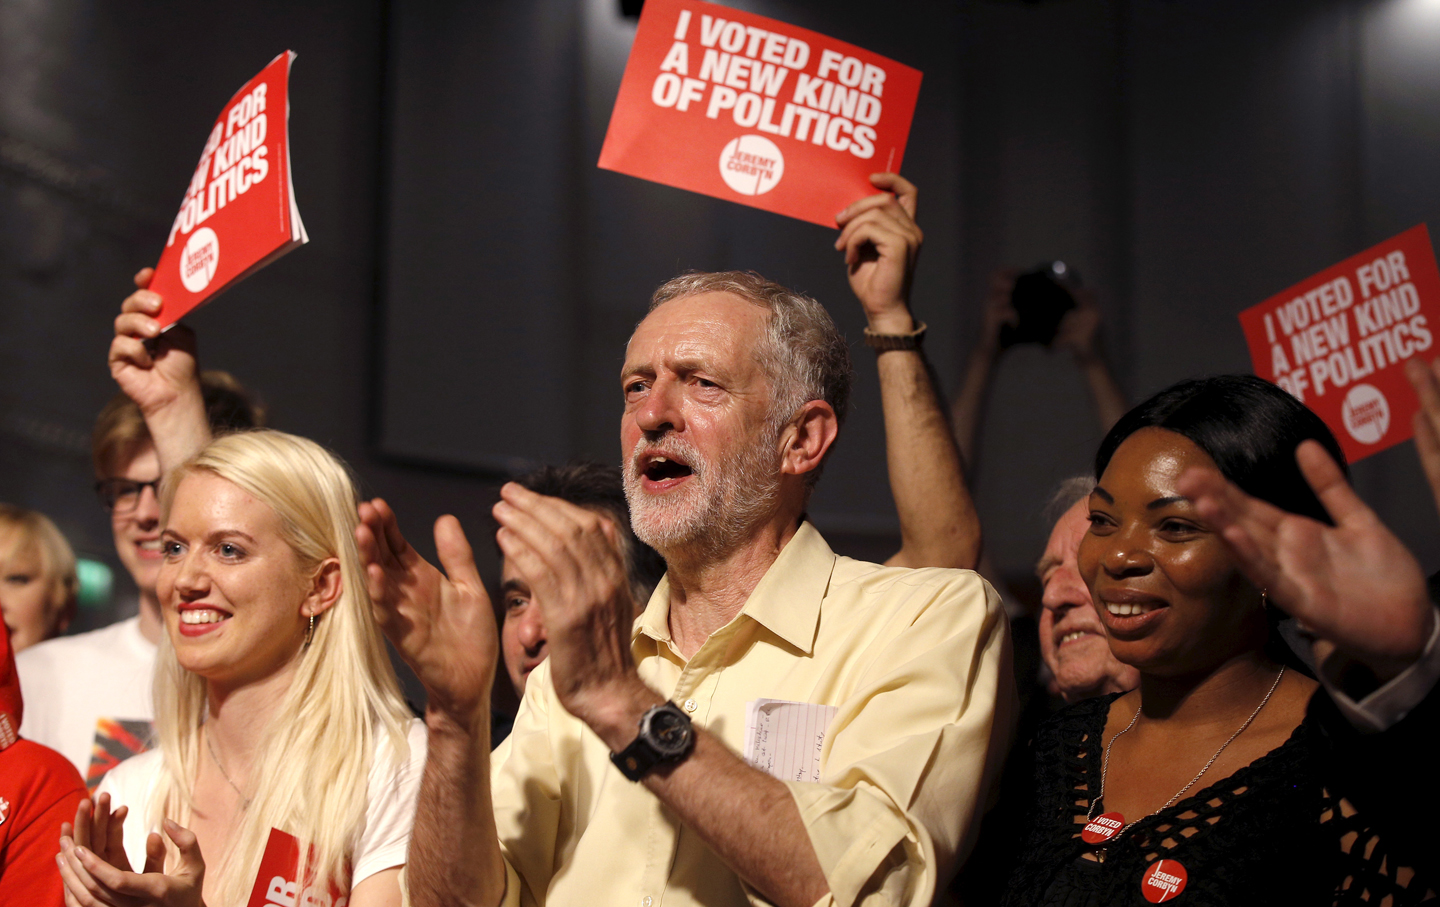 Jeremy Corbyn applauds the audience and supporters during a rally in London.